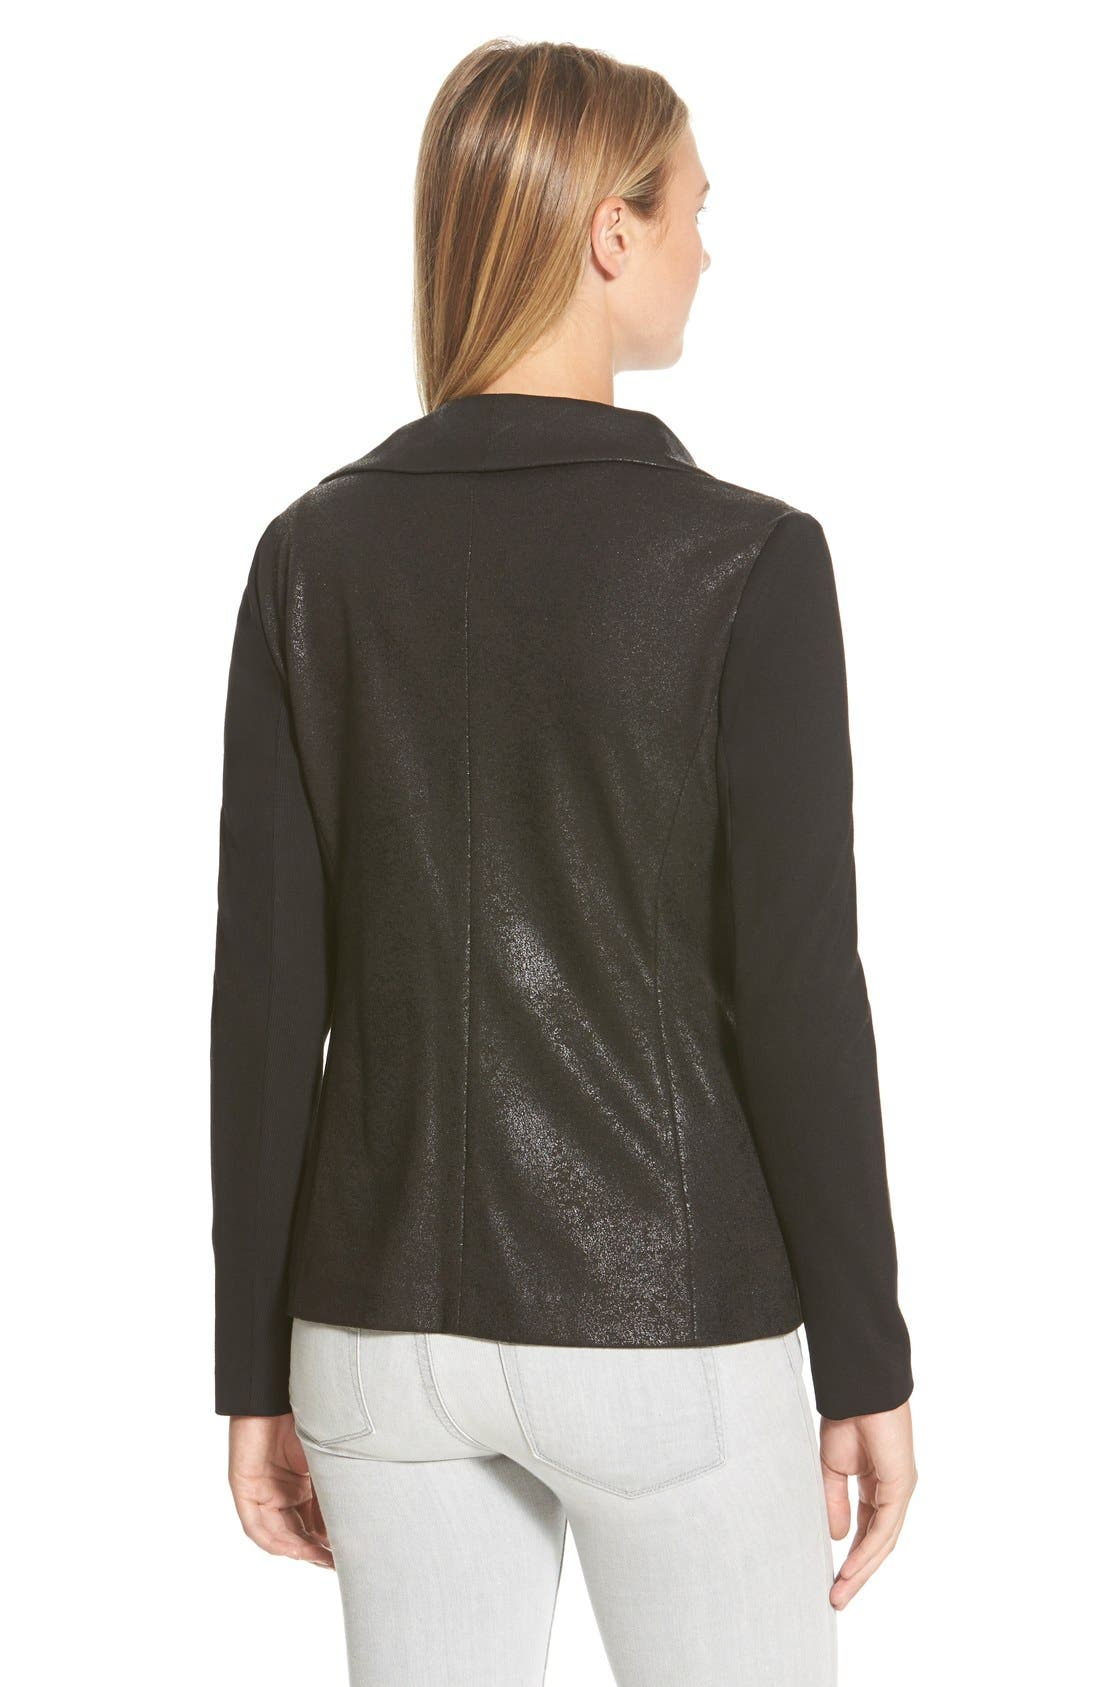 Distressed Foil Ponte Knit Asymmetrical Jacket,                             Alternate thumbnail 3, color,                             006